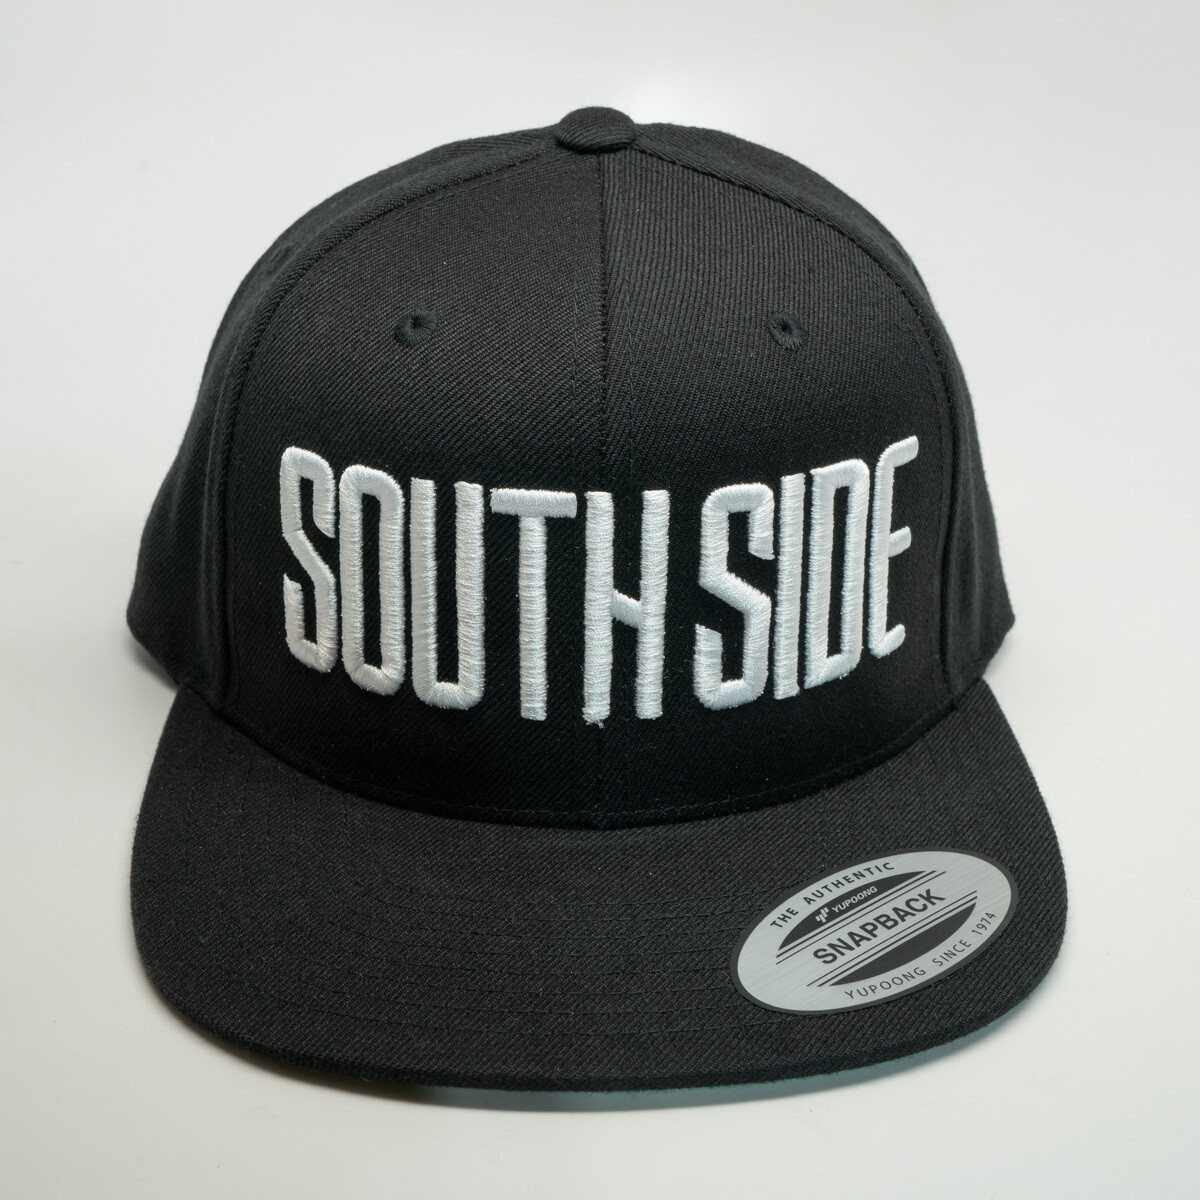 South Side - Snapback Hat